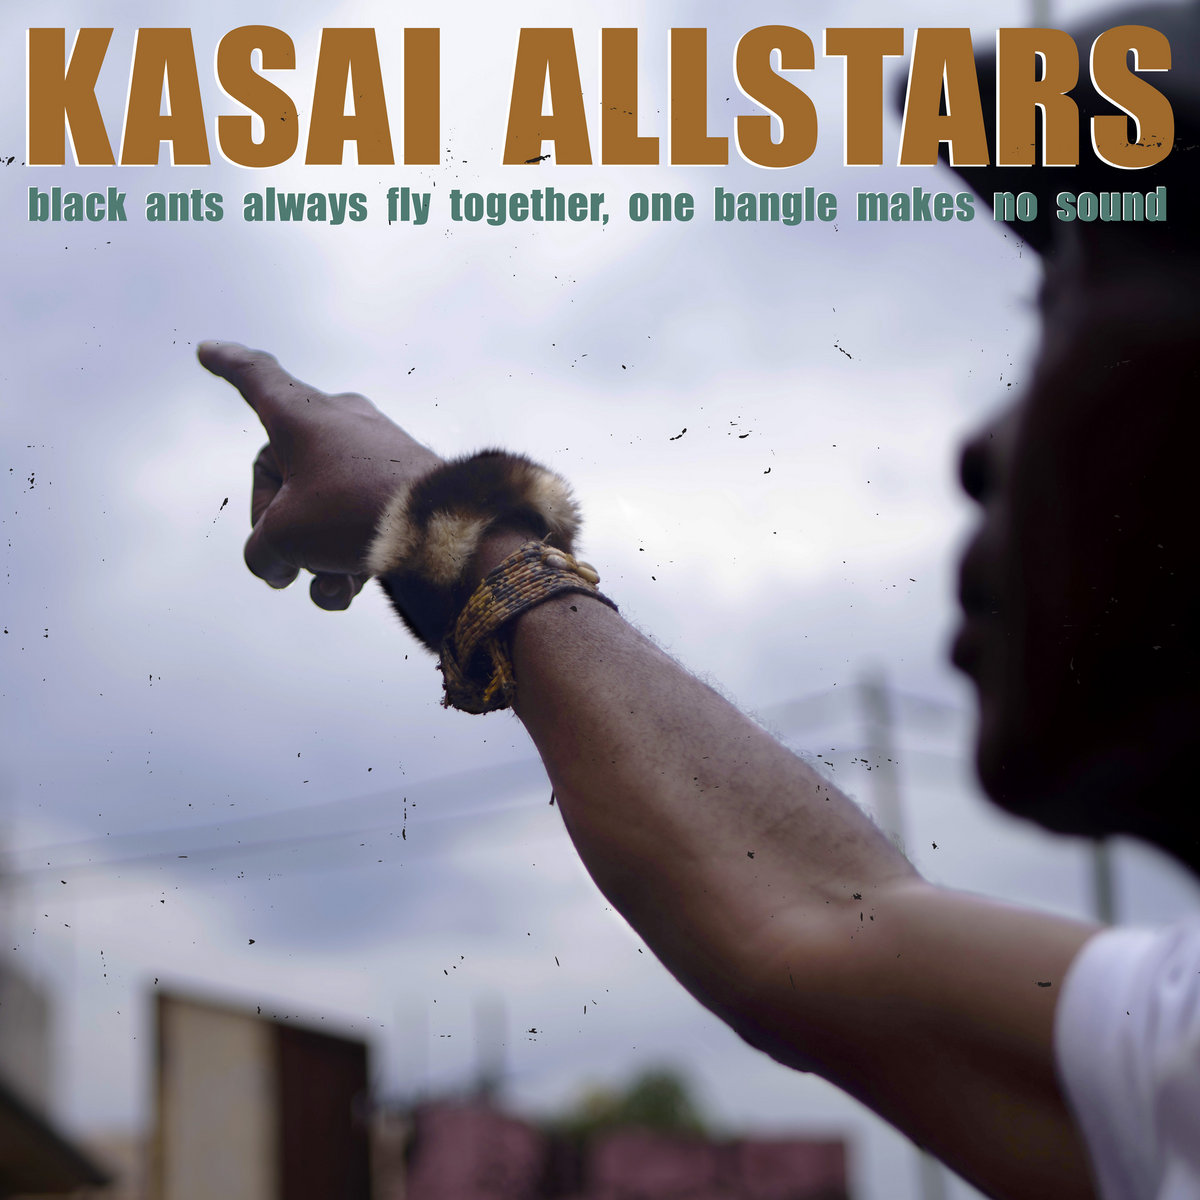 Album review: Kasai Allstars – 'Black Ants Always Fly Together, One Bangle Makes No Sound': maybe more restrained, but still surprises